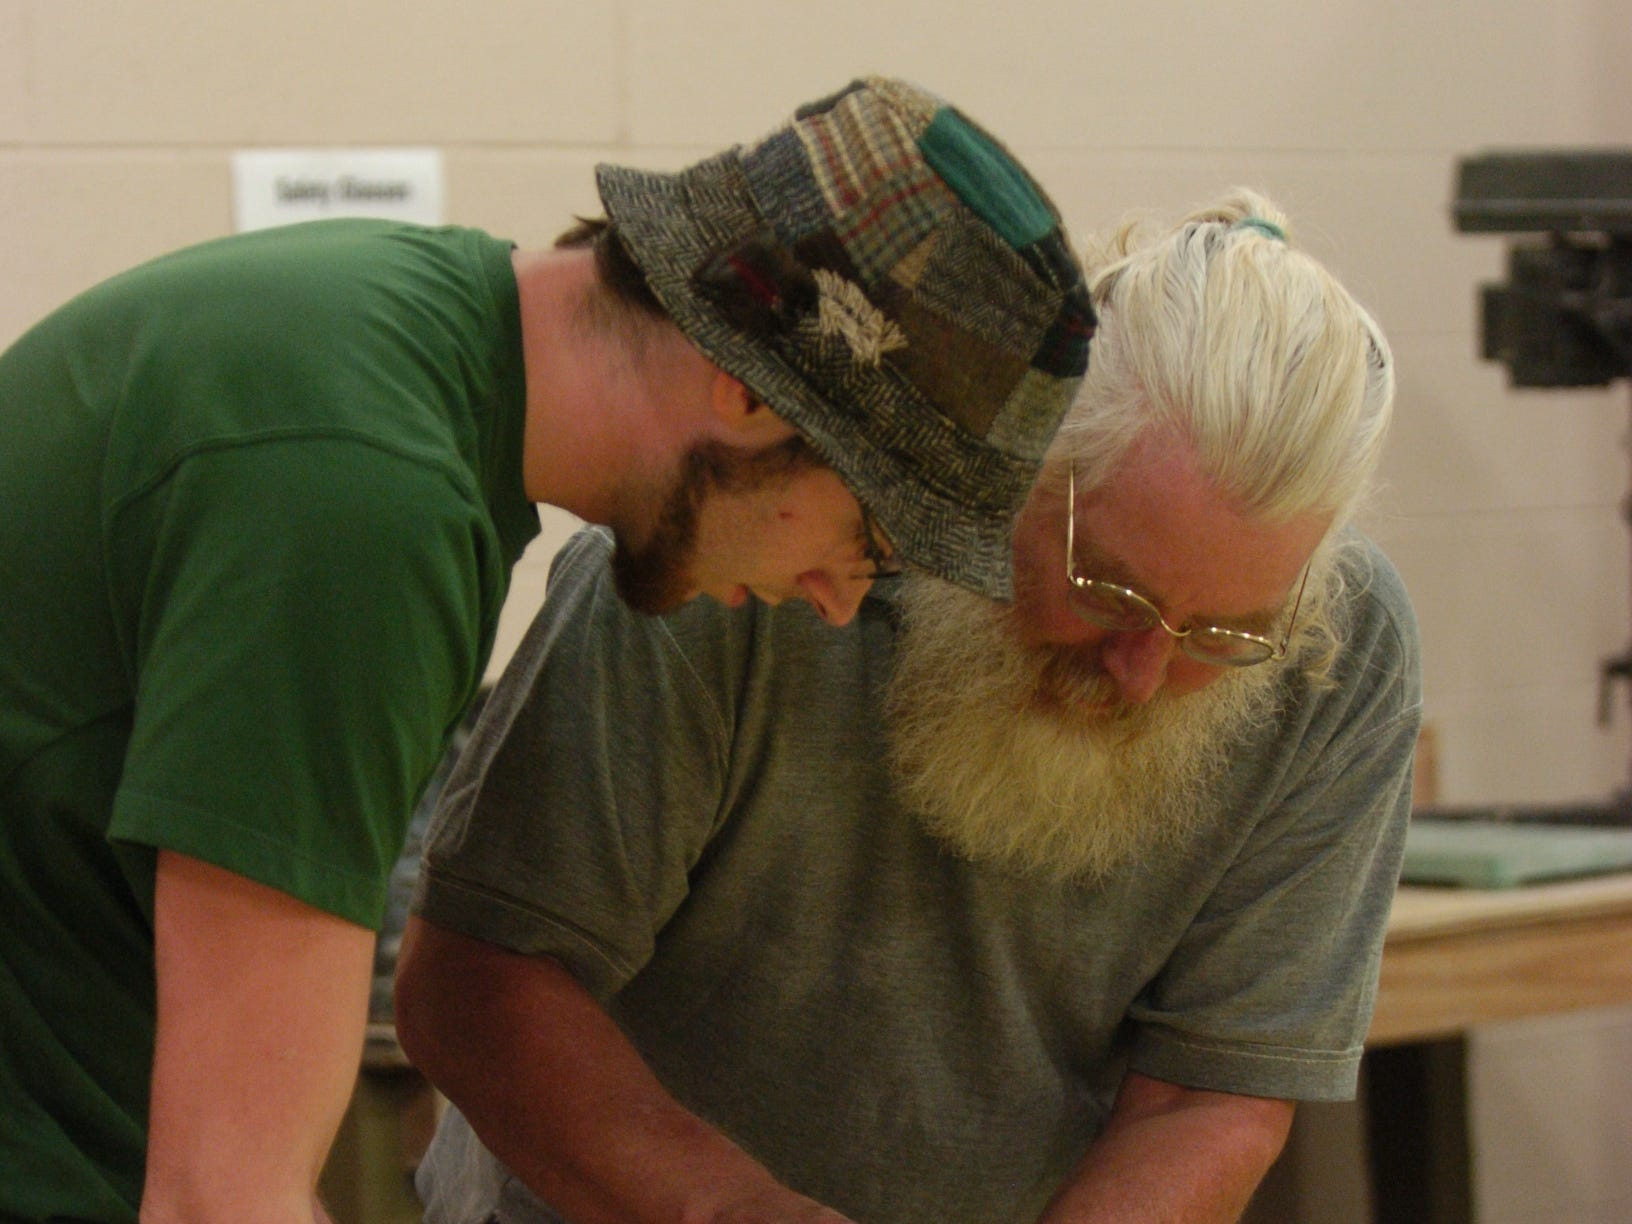 bagwellcenter.ASB#8370.jpg--METRO-- Professor Mike Rose helps student Luke Obanion during a sculpture class at the new Bagwell Center for Media and Art at Pellissippi State Community College.Photo by Amy Smotherman-Burgess, Knoxville News Sentinel staff